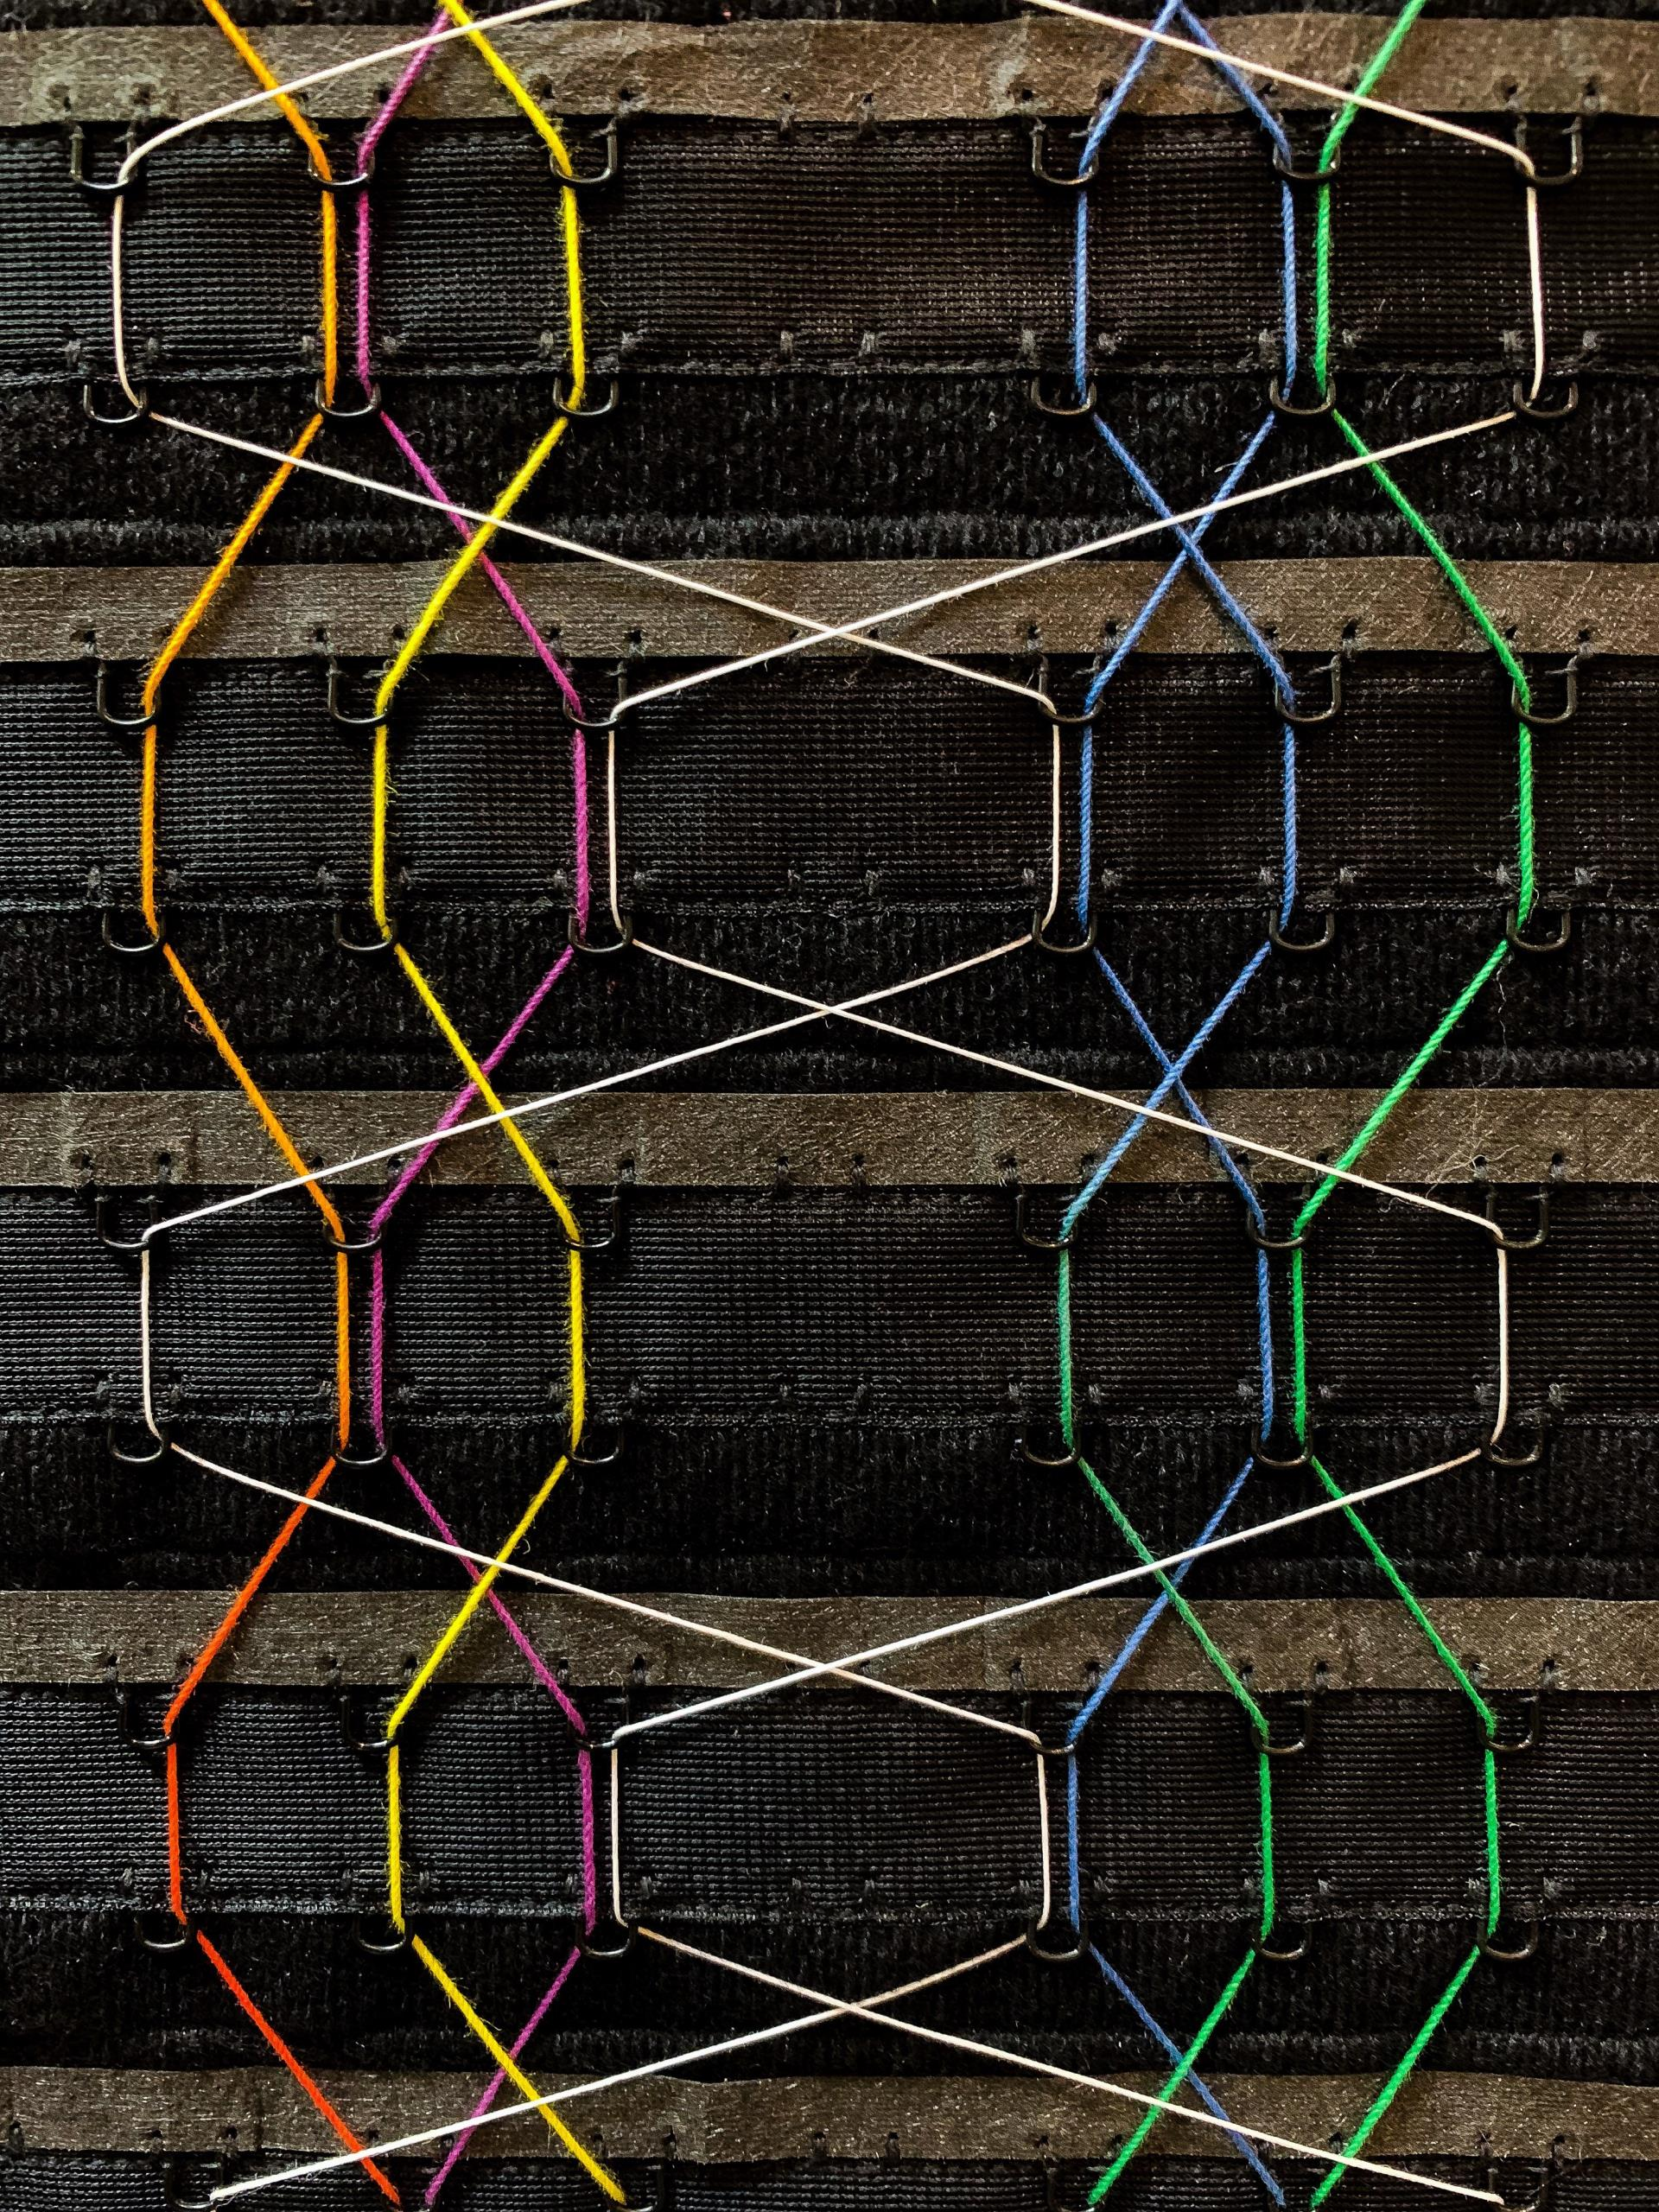 Interwoven threads on a black background